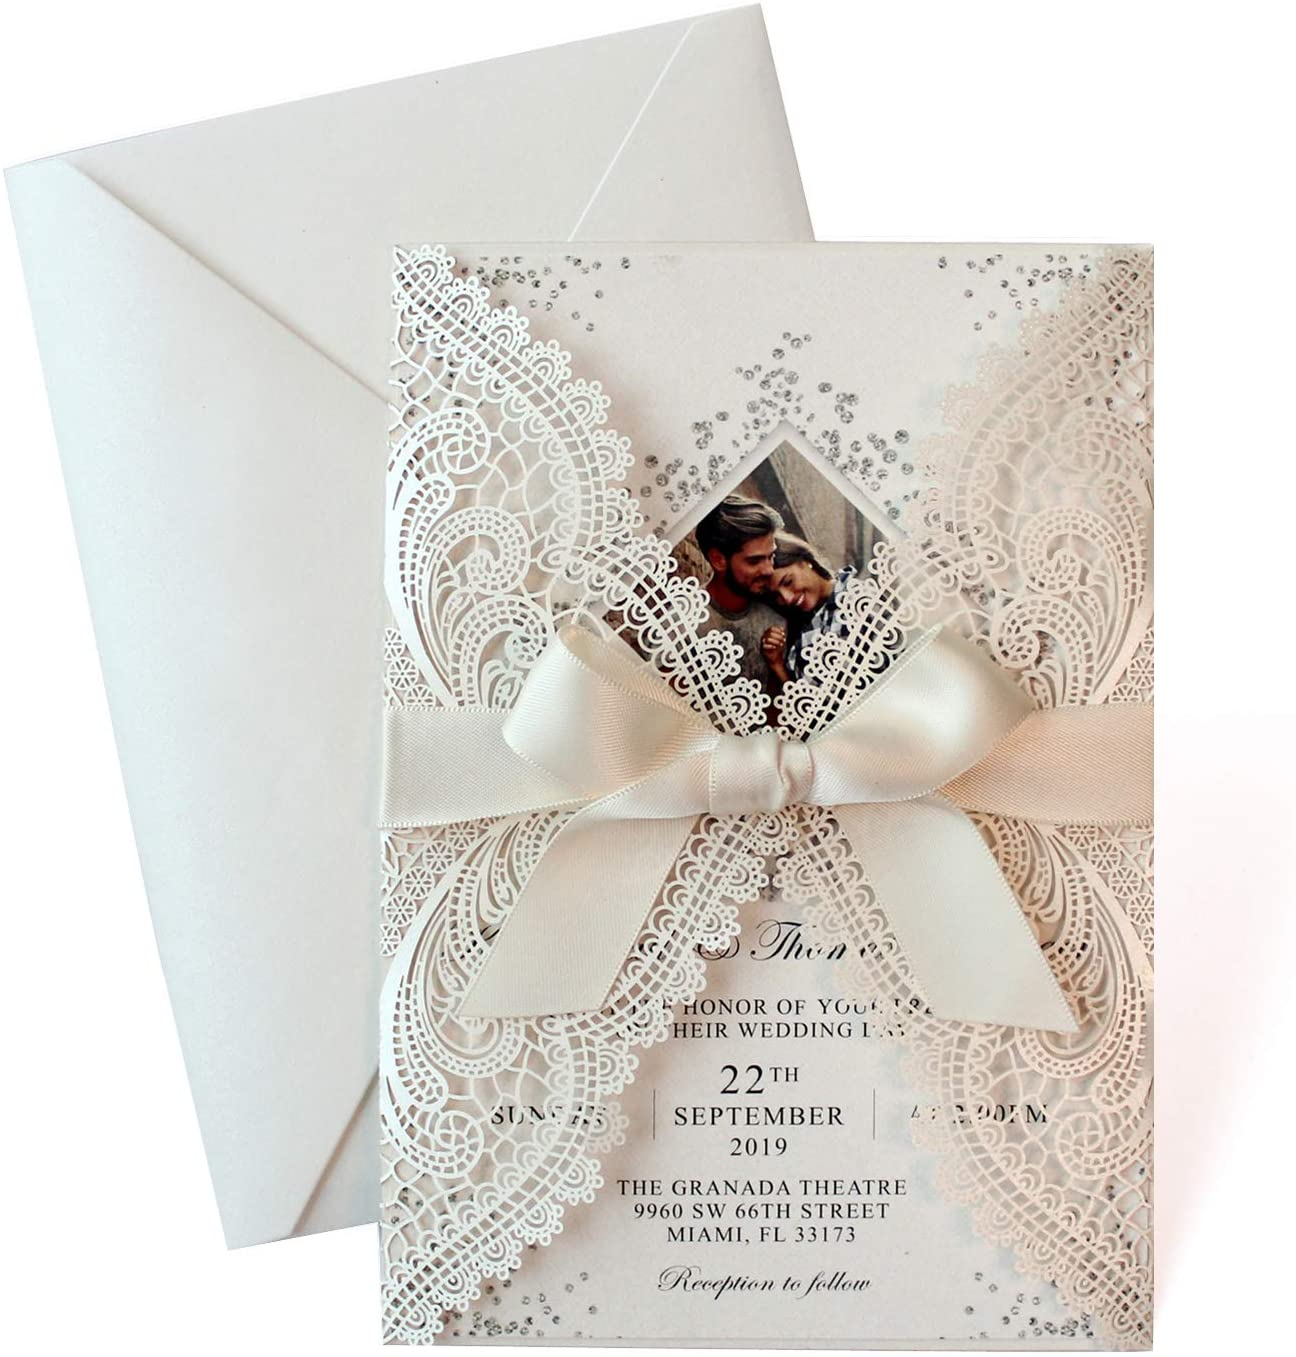 25-Set Laser Cut Wedding Invitations with Ribbon Bow - Photo Invitation Card Template, Elegant Bridal Shower Invites Save The Date, Include Laser Cut Covers, Blank Insert Cards, Ribbons, Envelopes